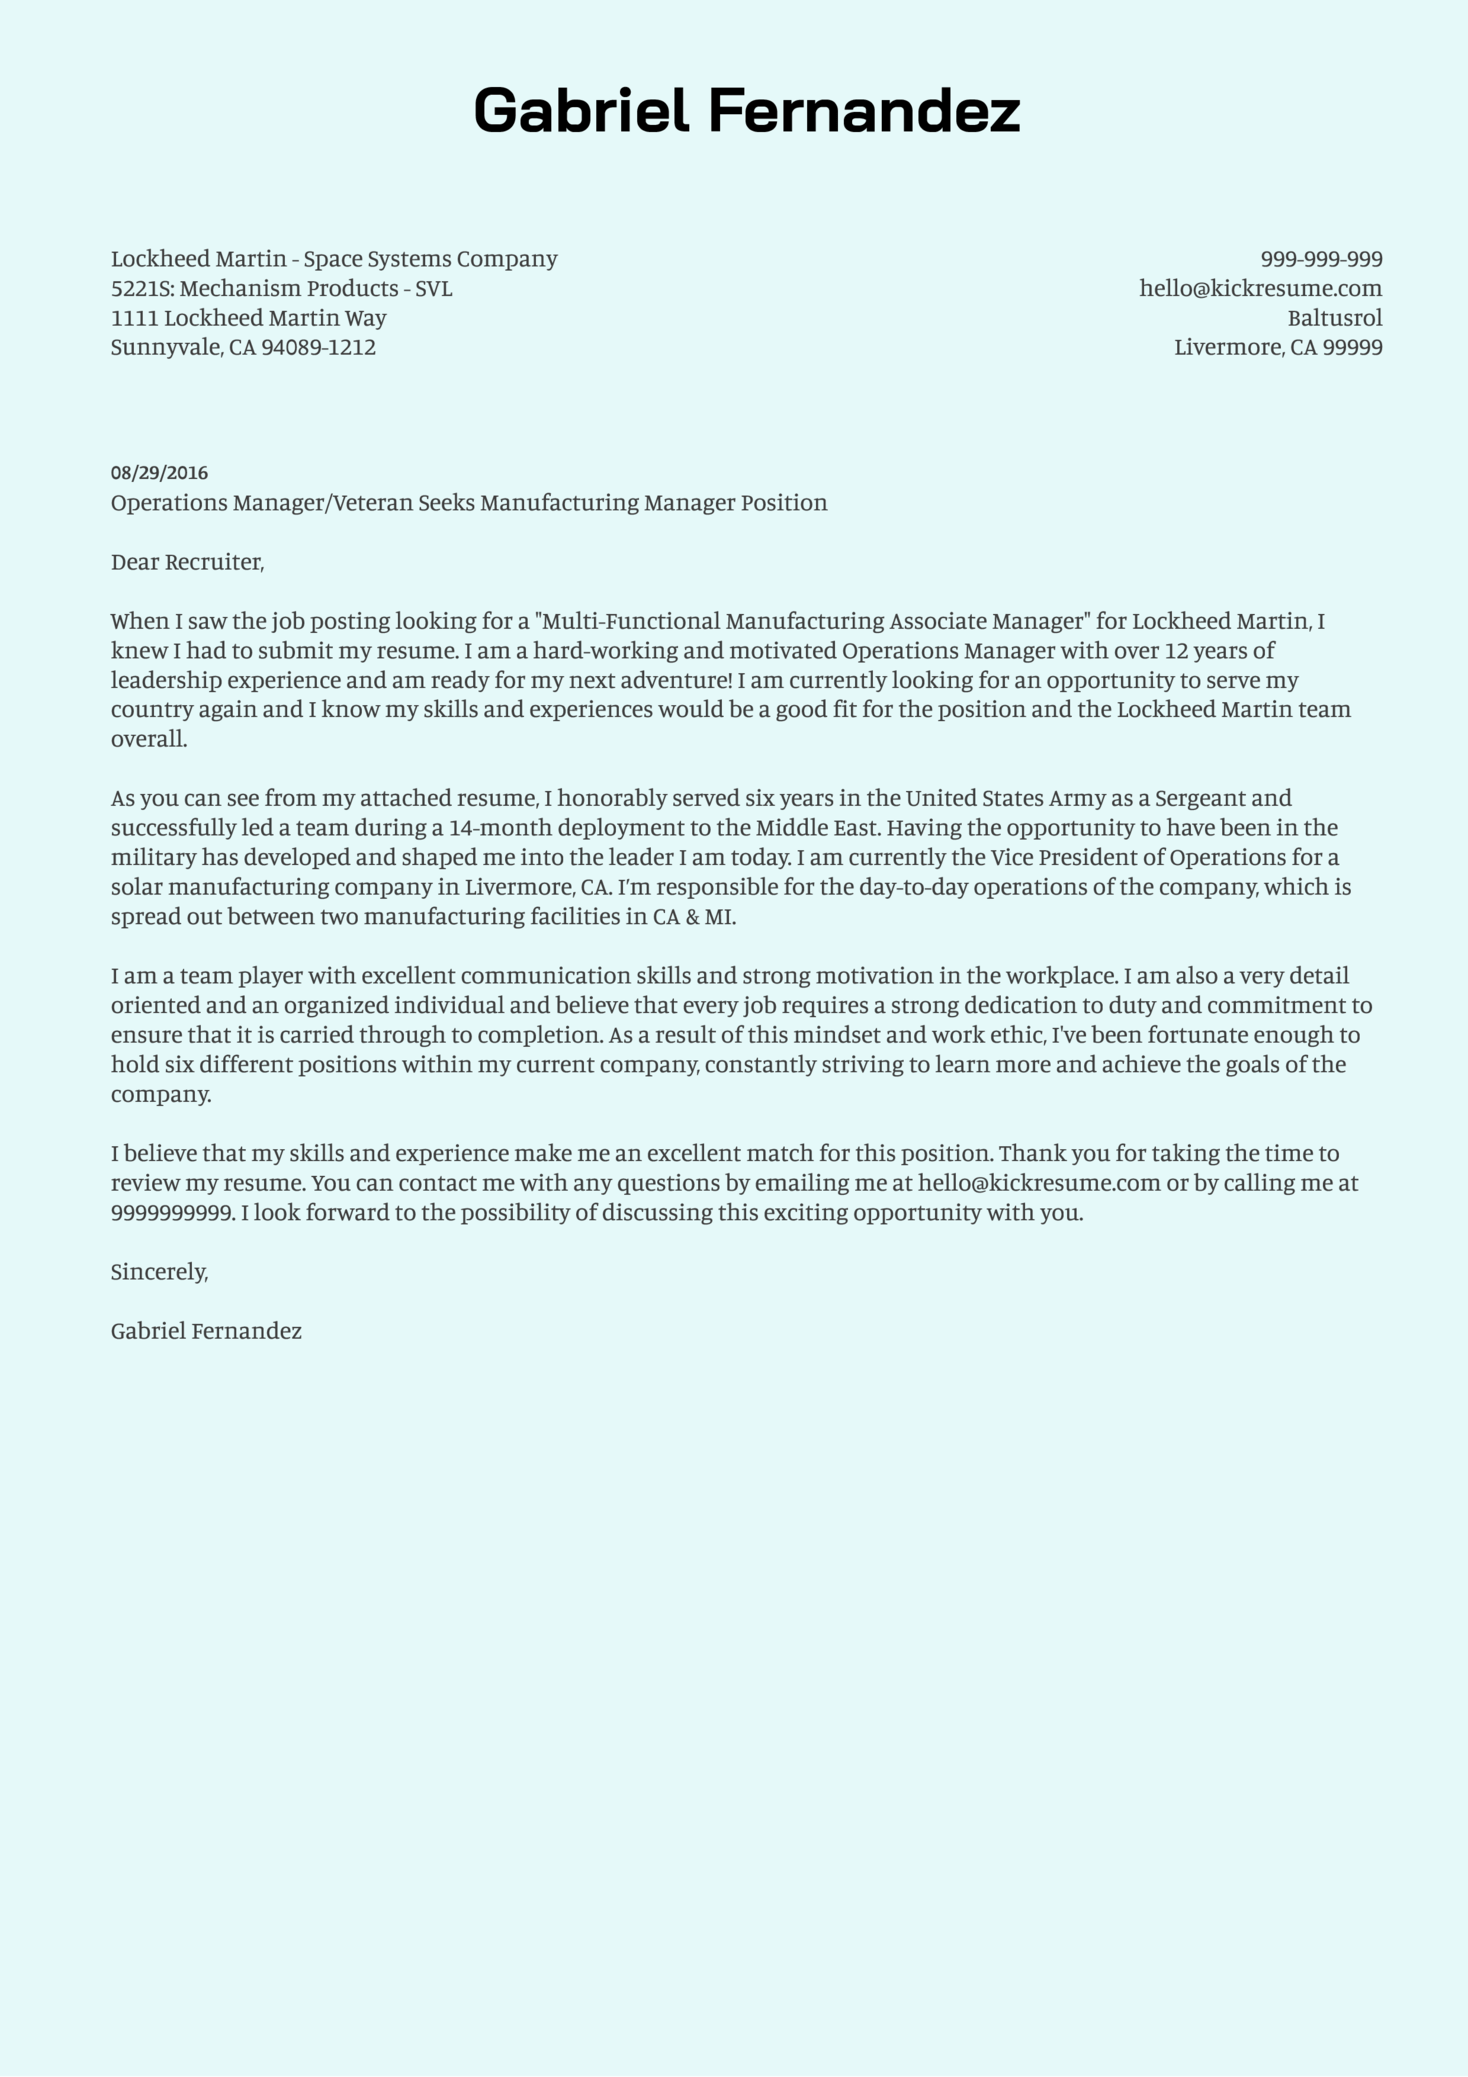 Lockheed Martin Manufacturing Manager Cover Letter